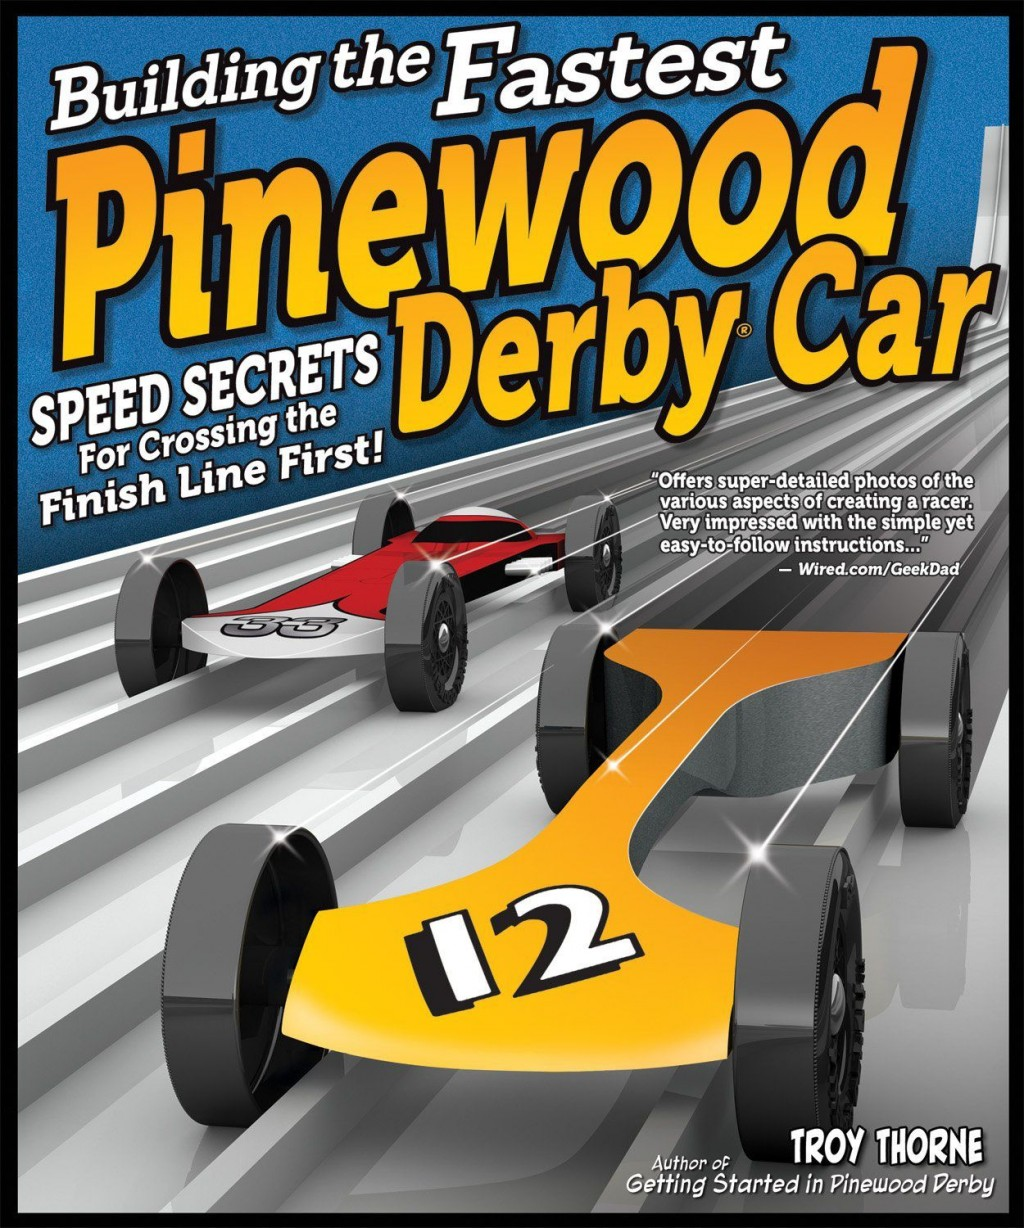 001 Fascinating Fast Pinewood Derby Car Template High Definition  Templates Design FastestLarge